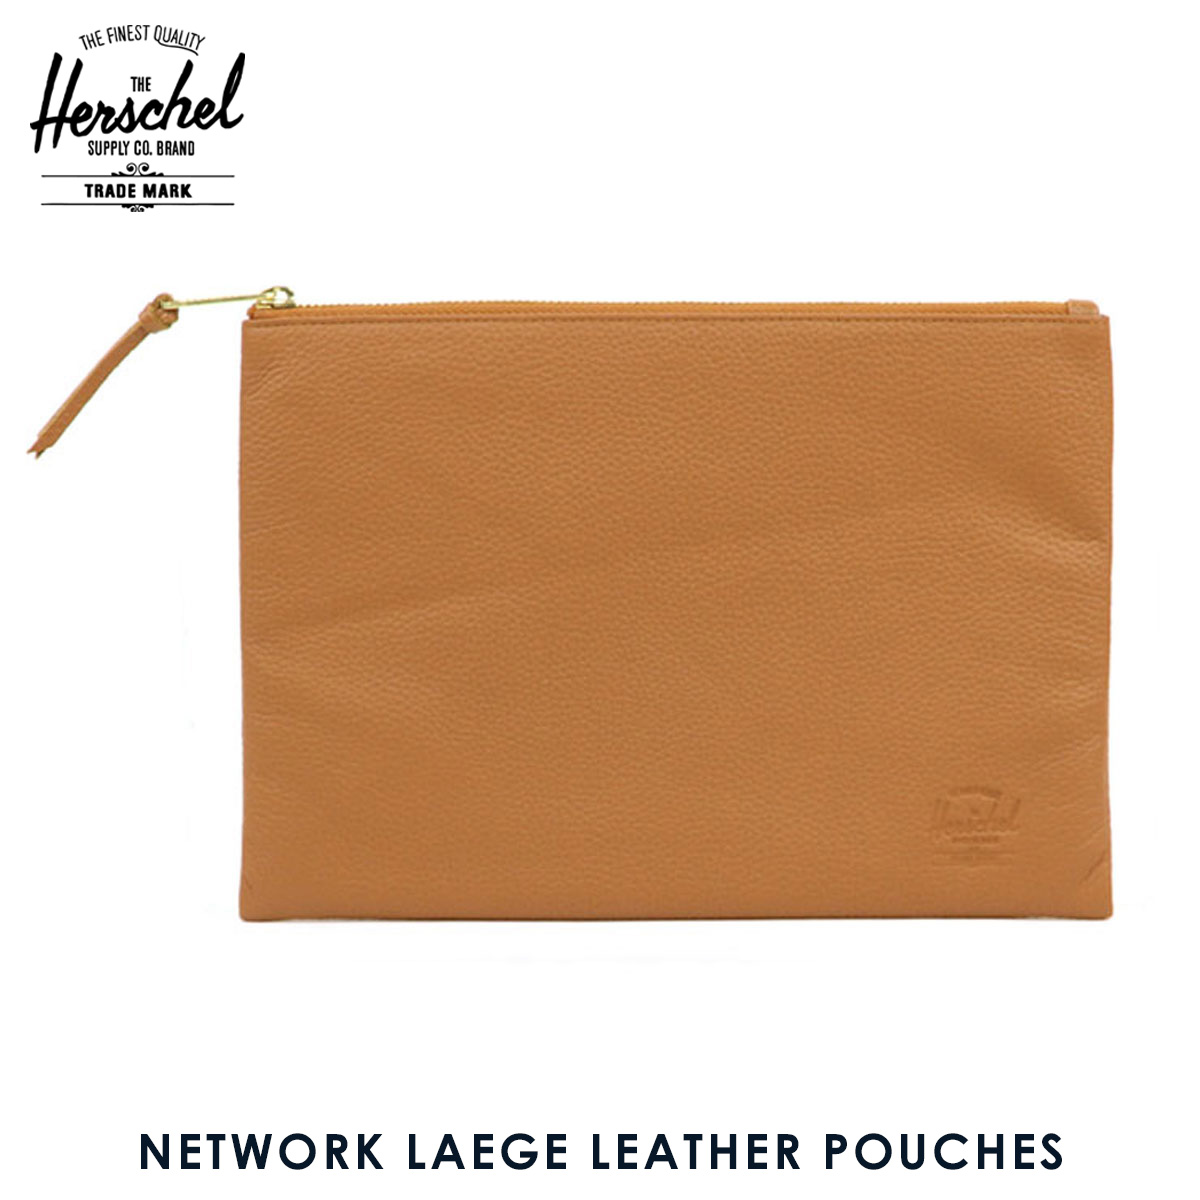 ハーシェル サプライ Herschel Supply 正規販売店 ポーチ NETWORK LAEGE LEATHER POUCHES CLASSICS 10163-00034-OS TAN PEBBLED LEATHER D00S20